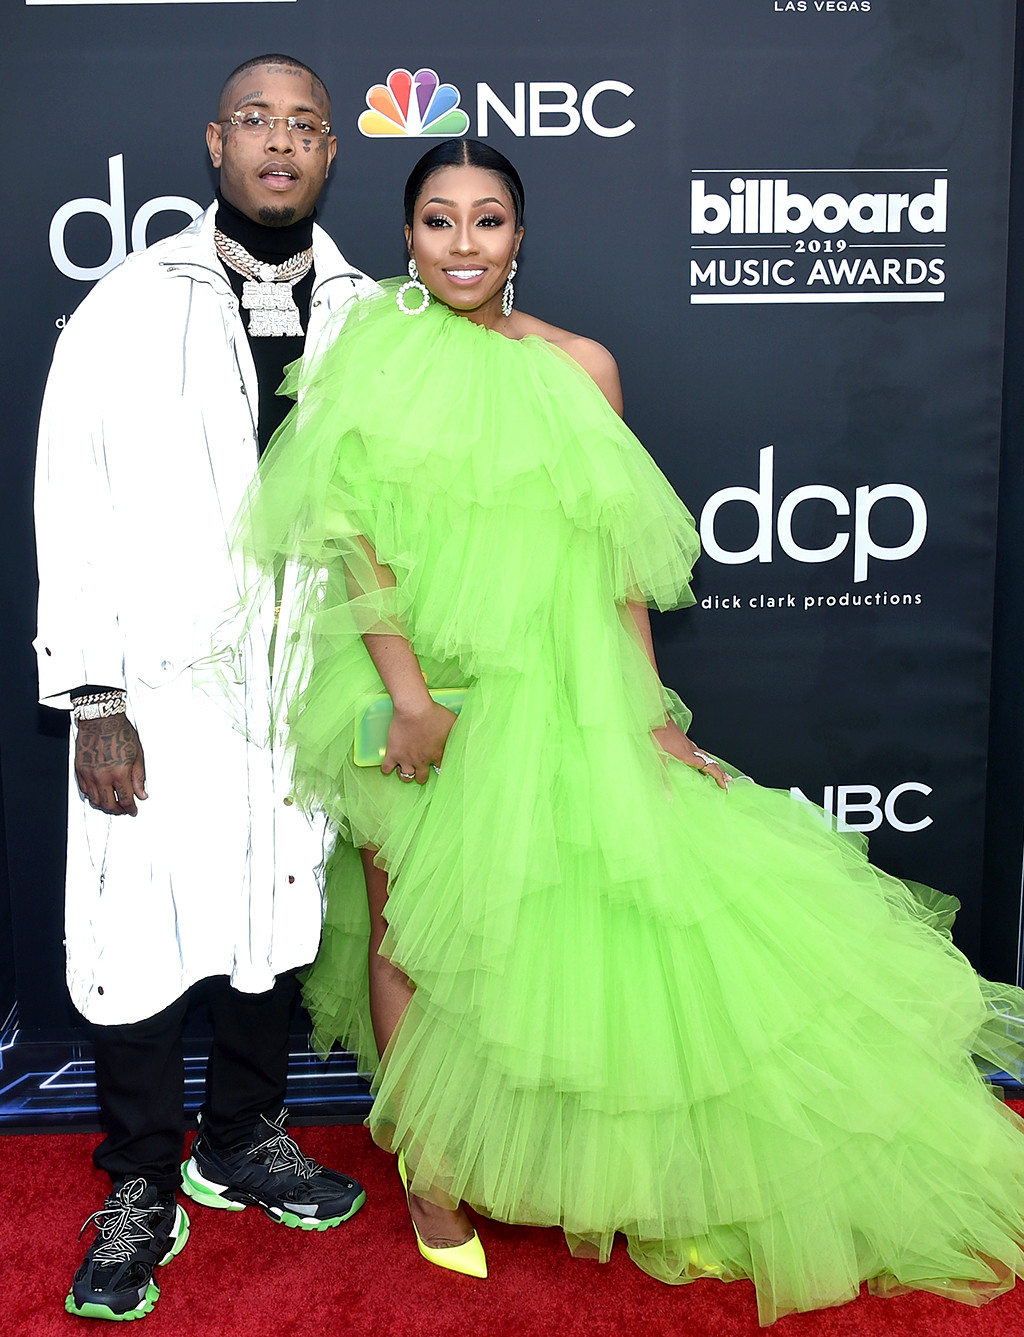 Southside, Yung Miami, 2019 Billboard Music Awards, Billboard Music Awards, Couples, Arrivals